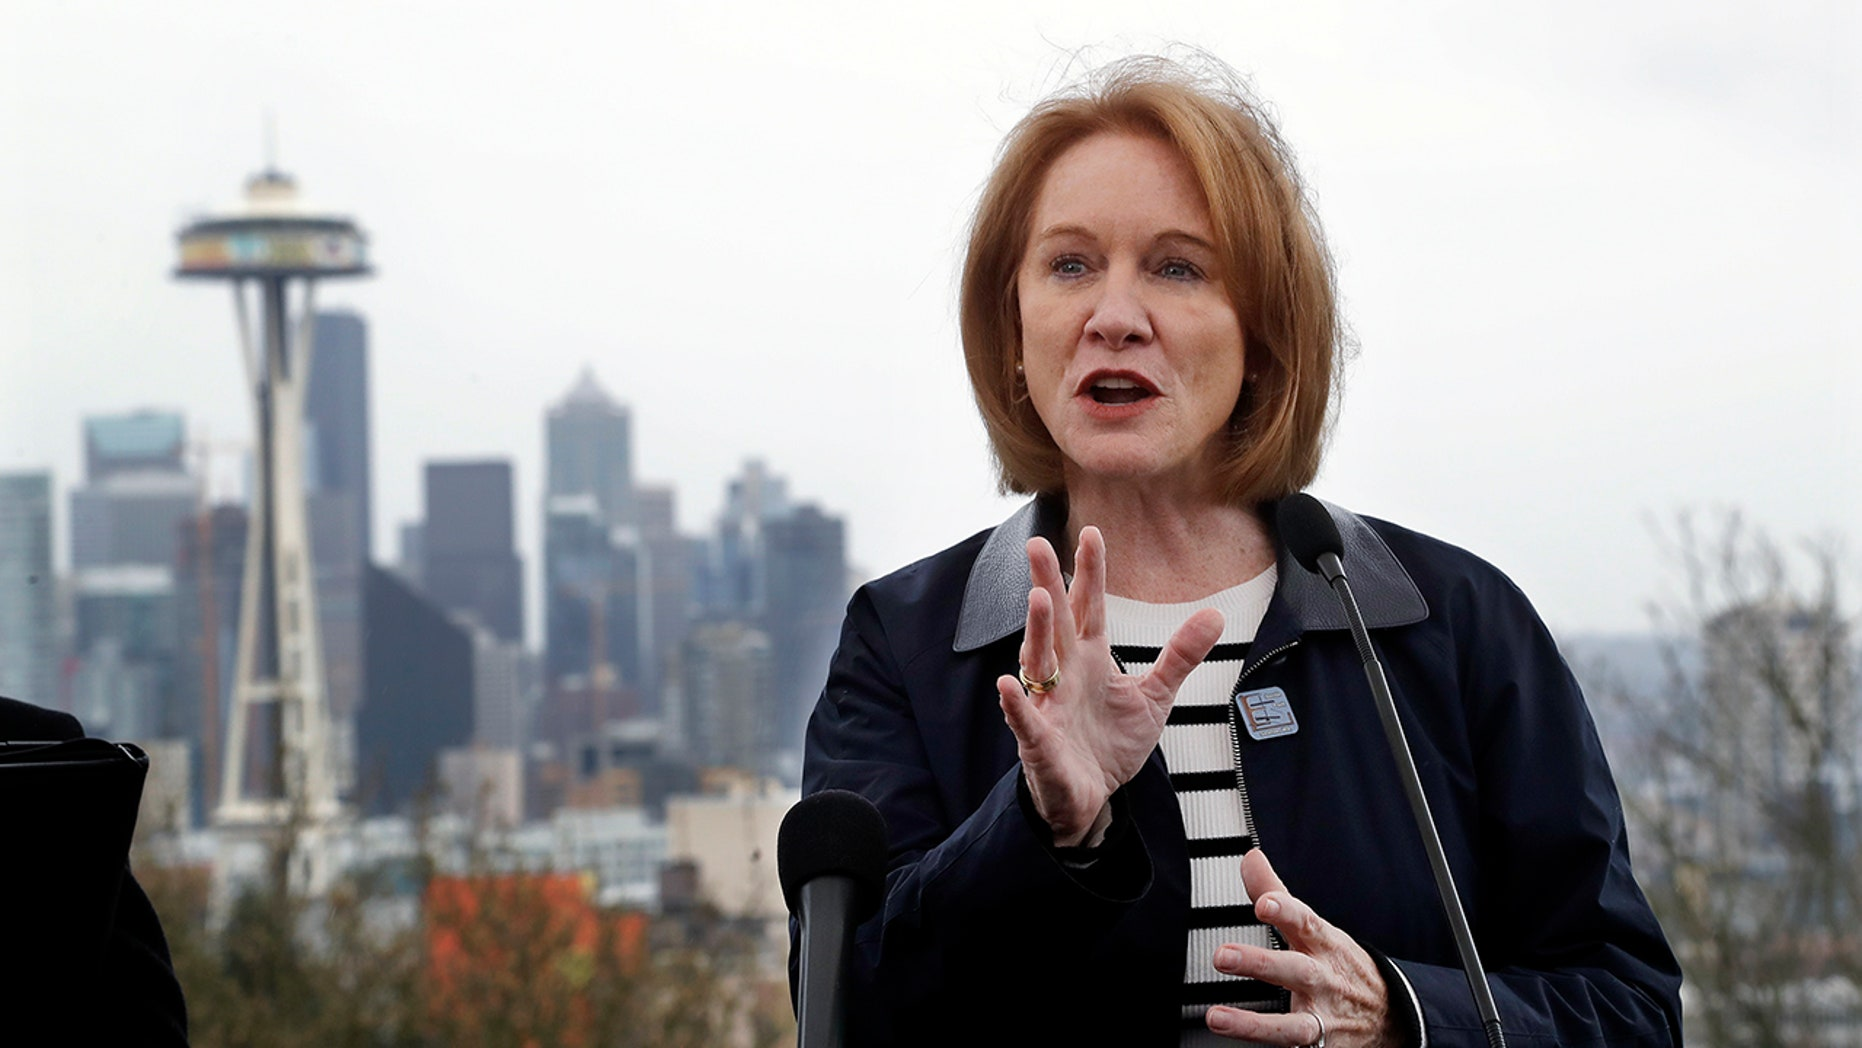 Seattle Mayor Jenny Durkan temporarily halted work on a streetcar project after realizing it would cost the city 50 percent more than previously estimated.